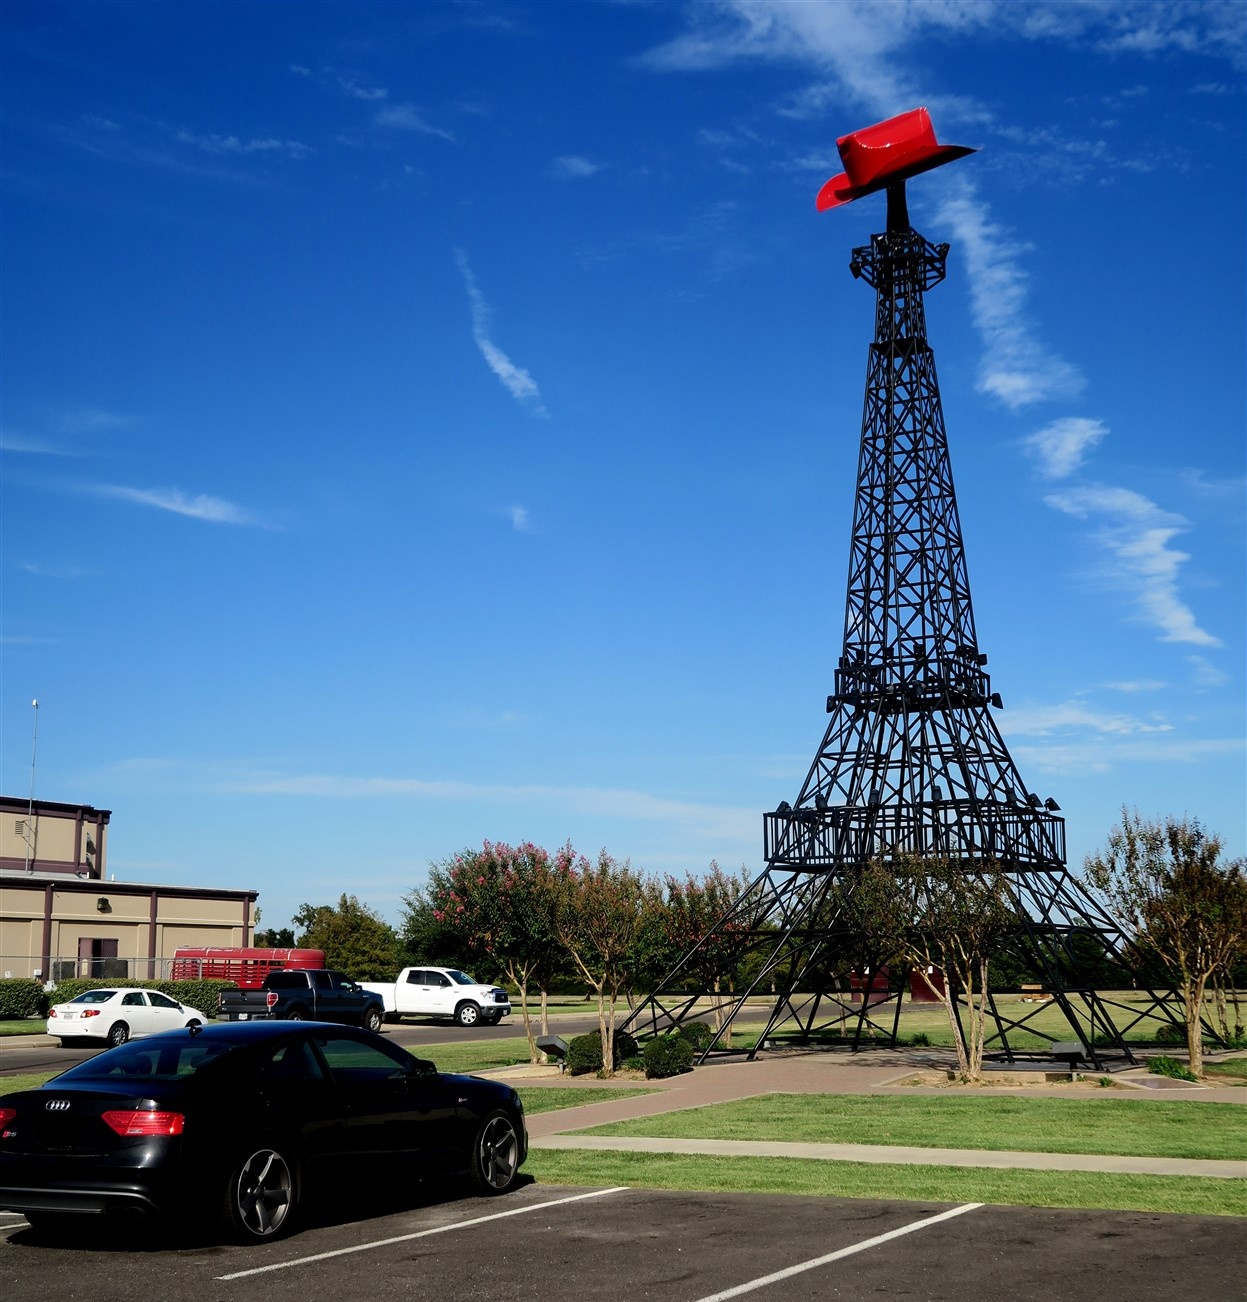 2015 09 23 242 Paris TX_LI.jpg